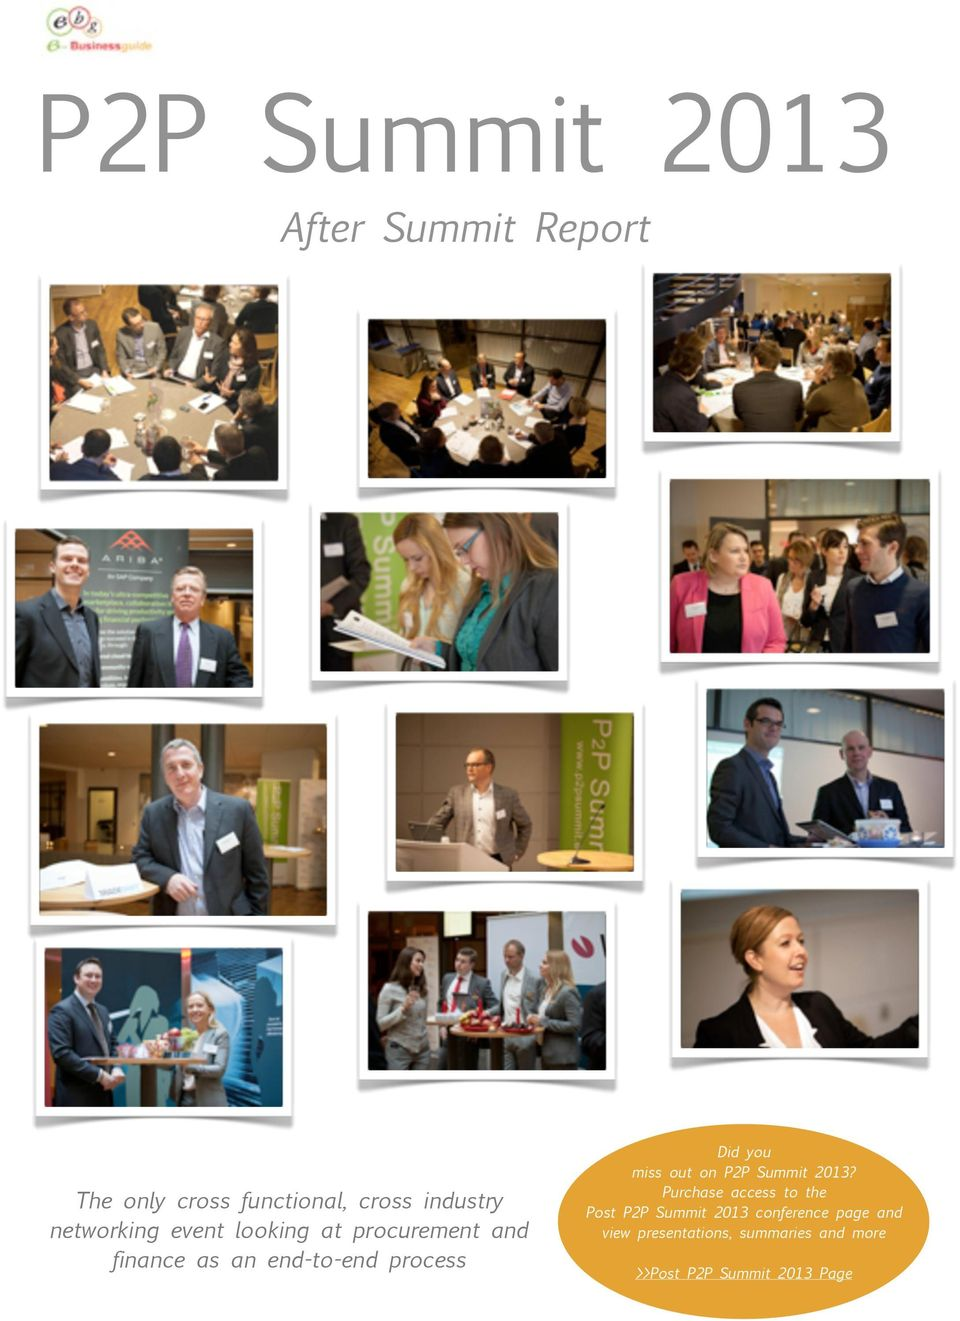 you miss out on P2P Summit 2013?